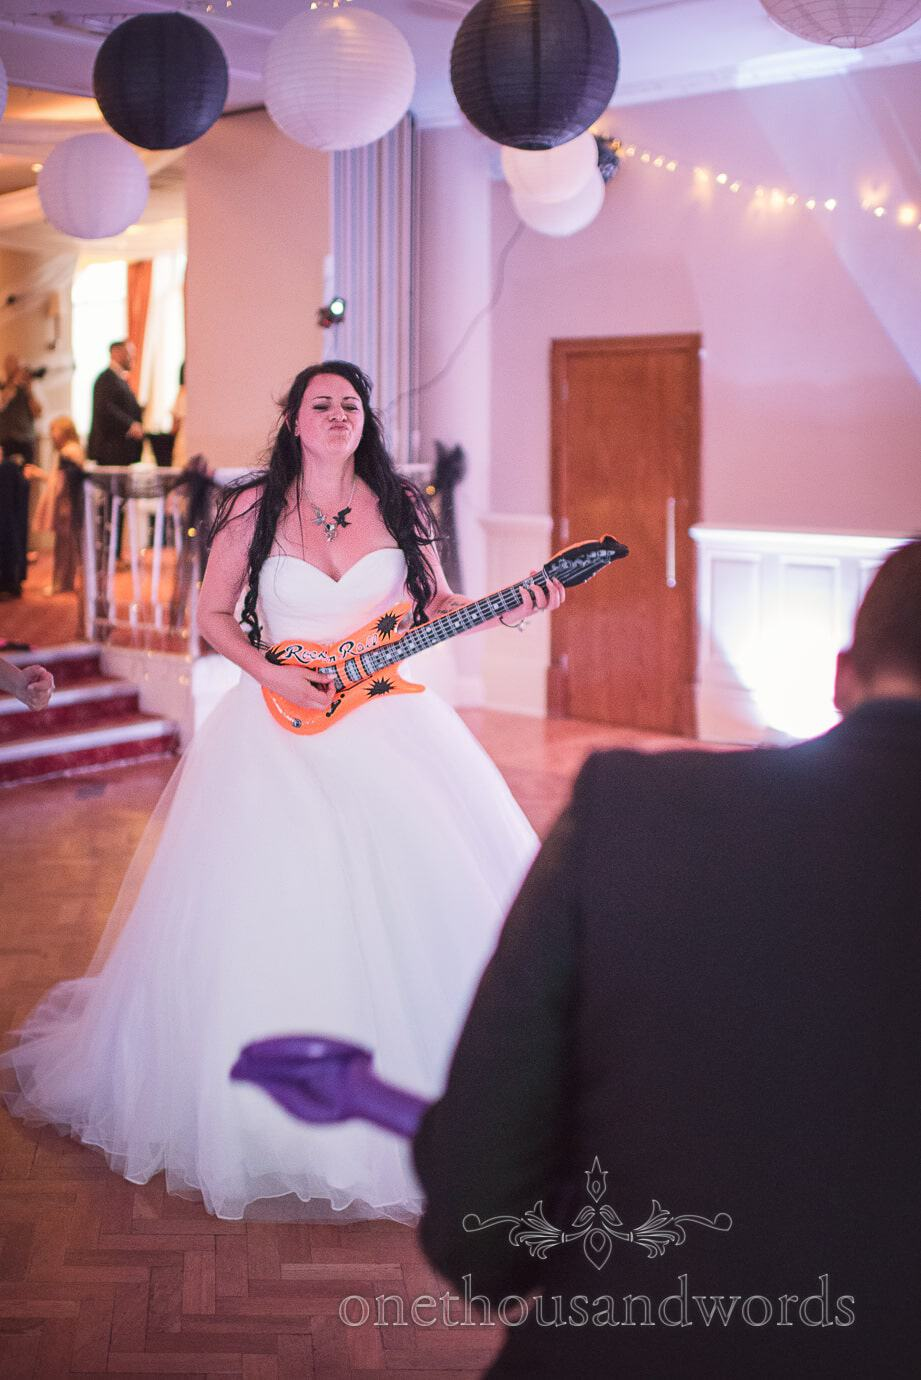 Bride rocks out playing inflatable guitar at Rock and Roll themed wedding photograph